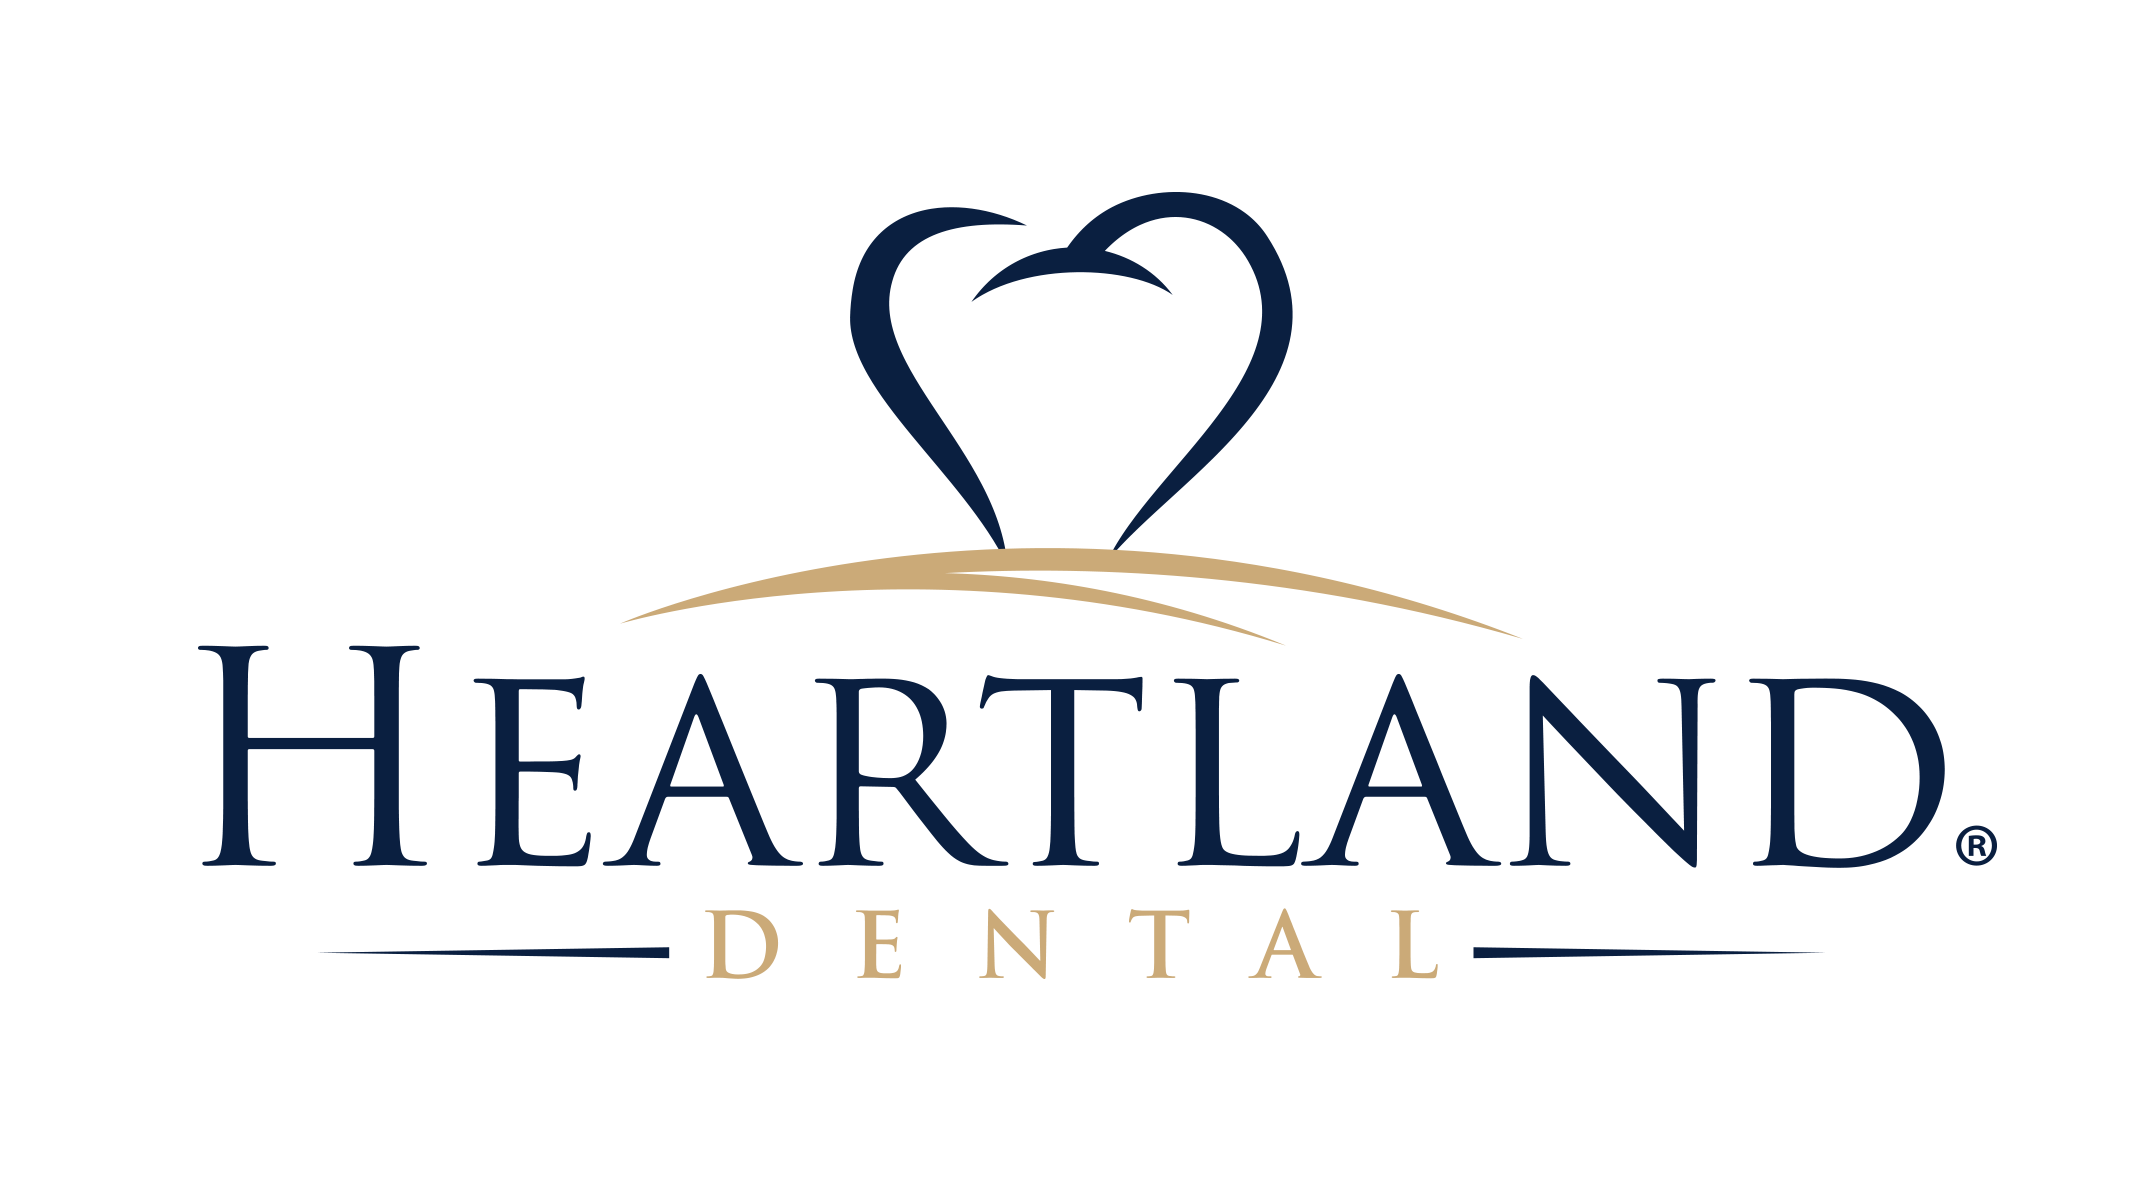 Heartland Dental on Track to Deliver Accelerated Growth in 2021